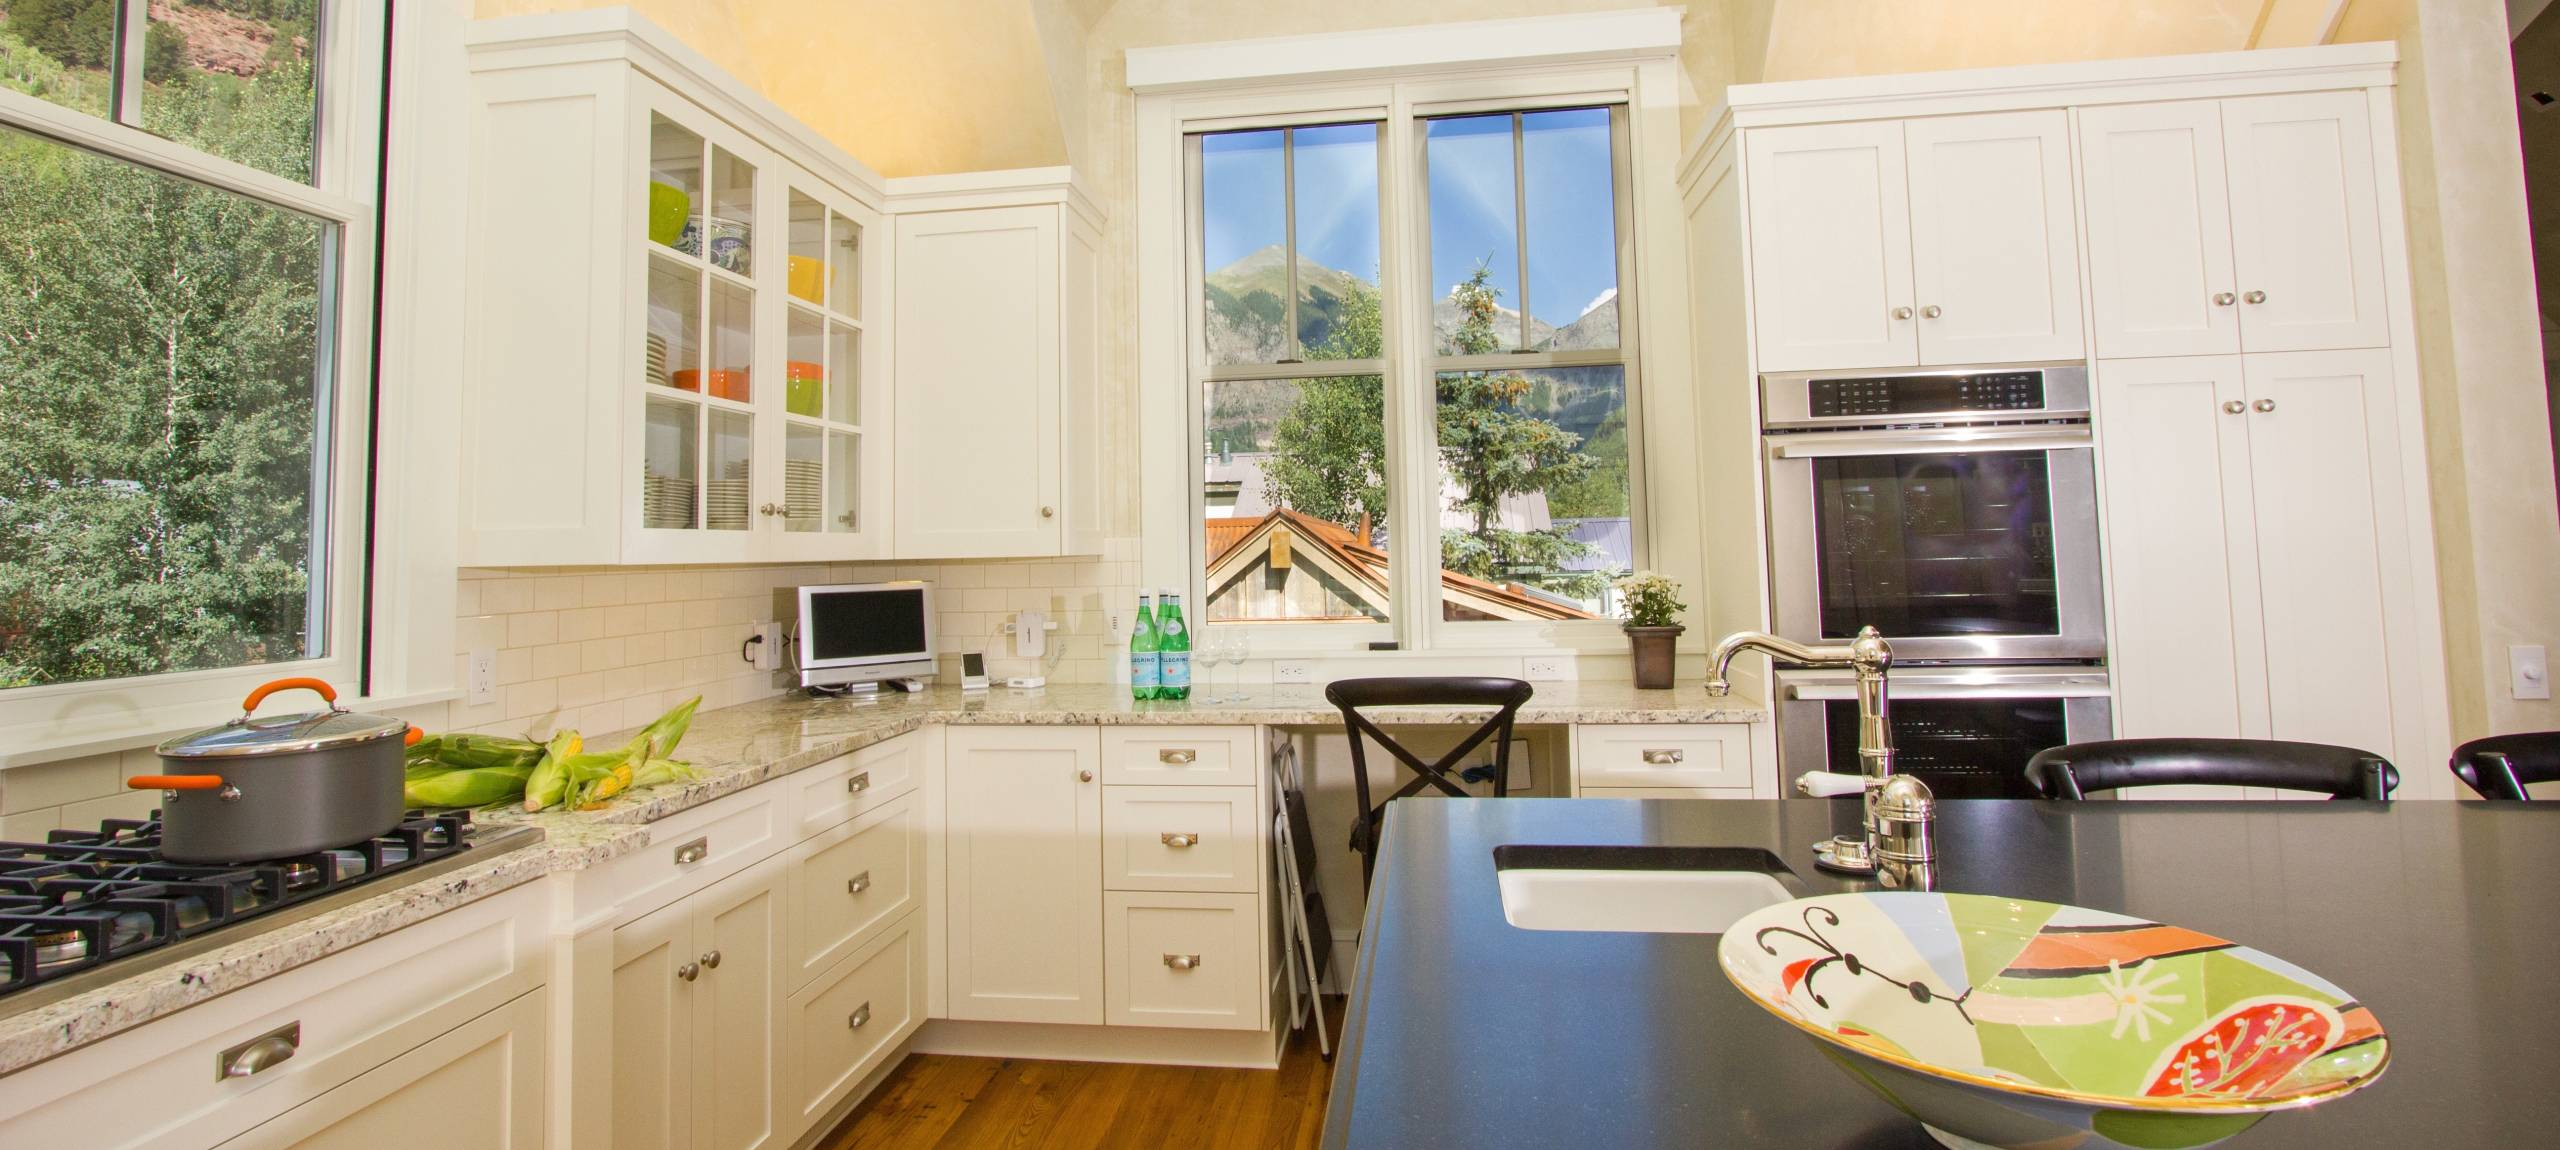 Telluride-rentals-spruce-house-large-kitchen